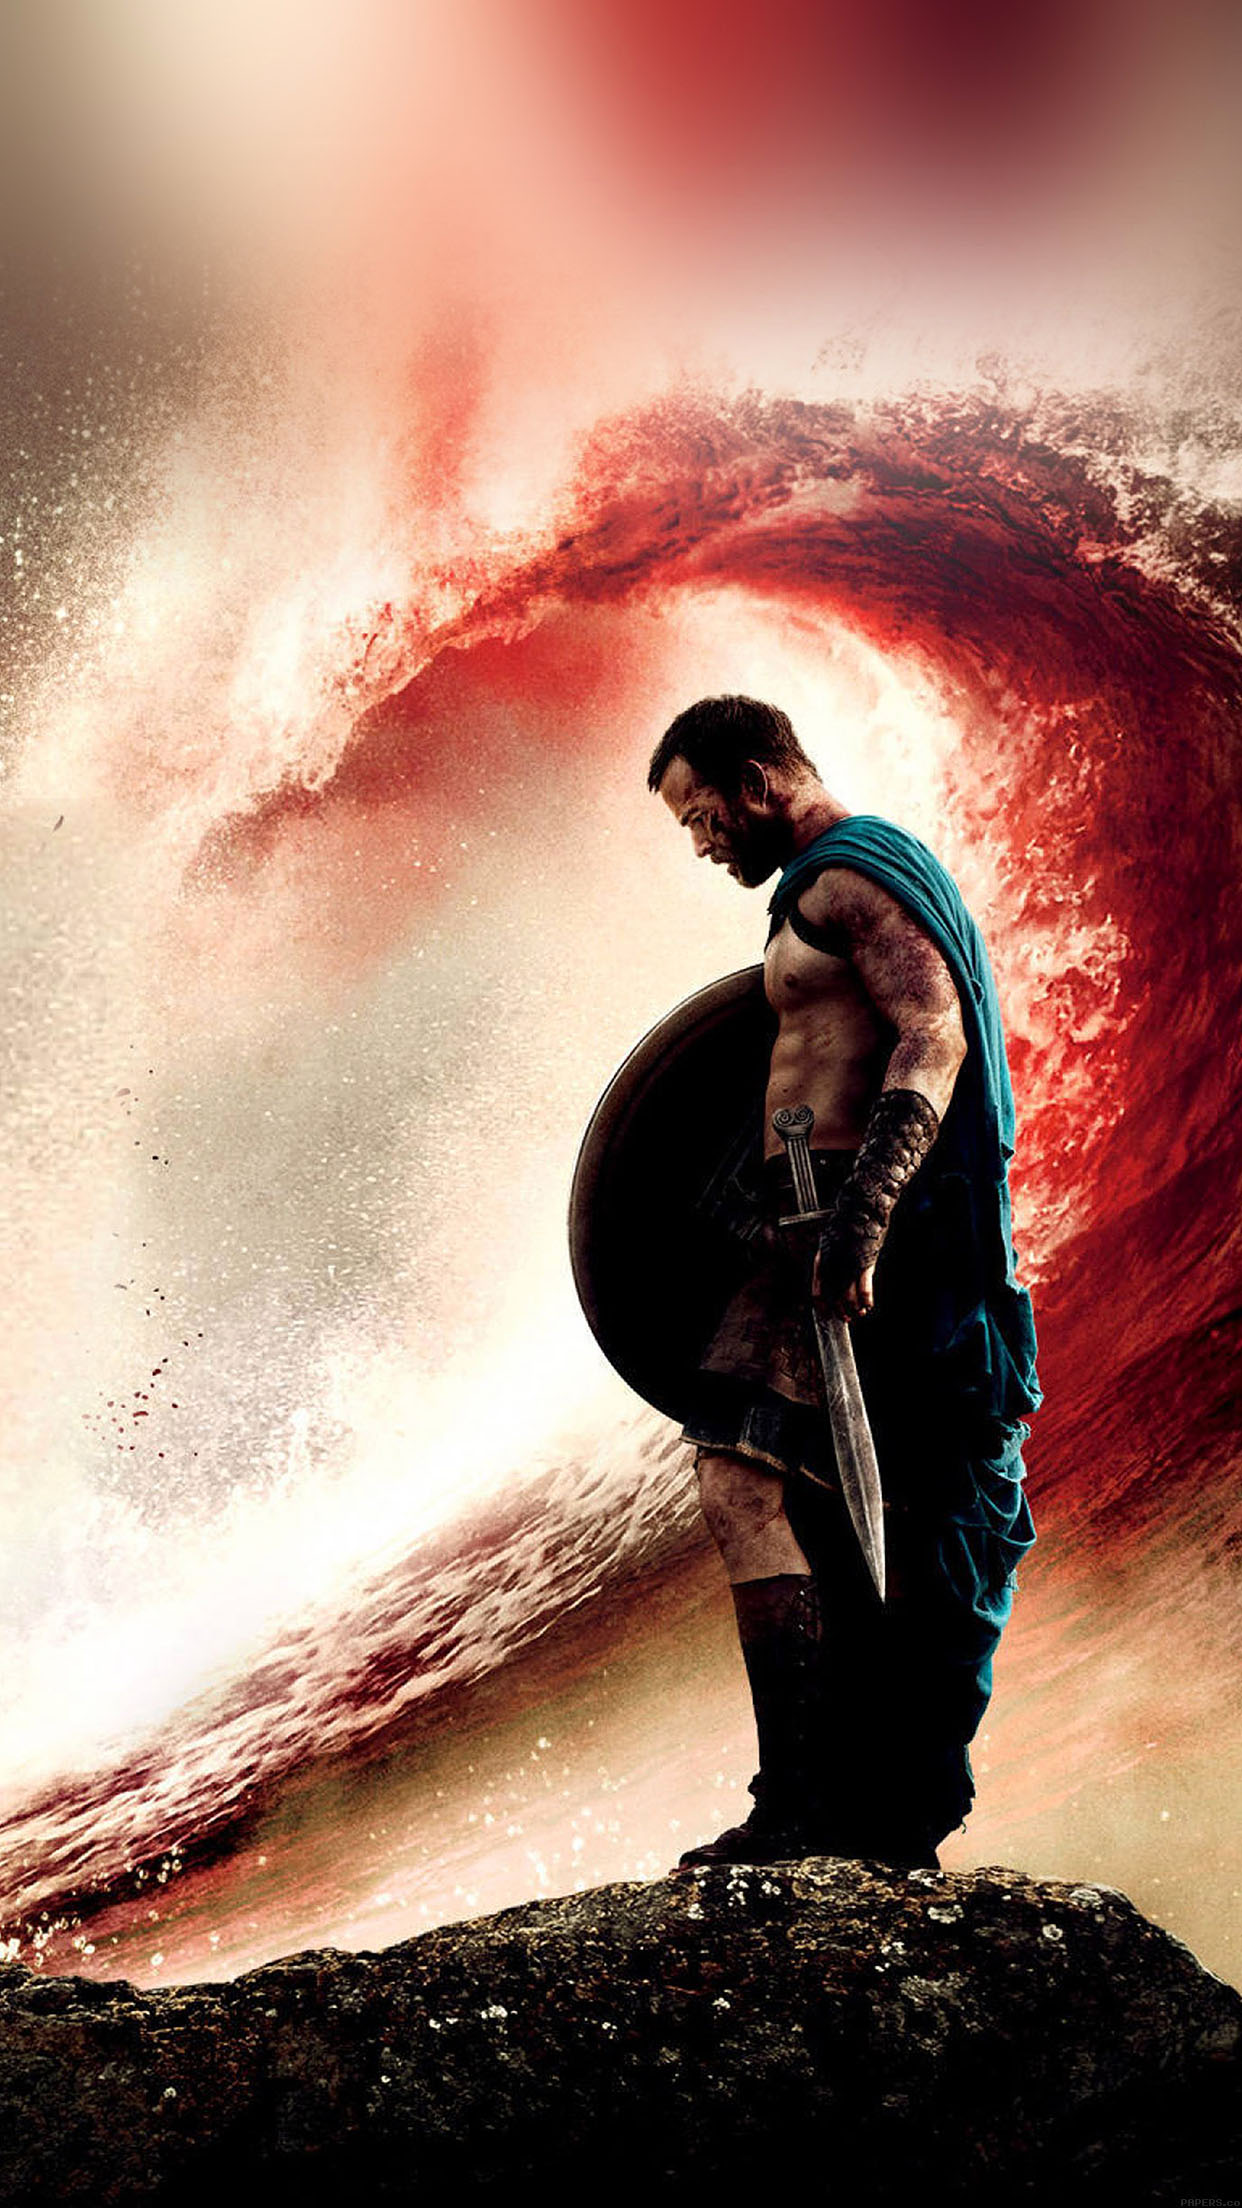 Iphone X Funny Wallpaper Ha84 Wallpaper 300 Rise Of An Empire Wave Film Papers Co